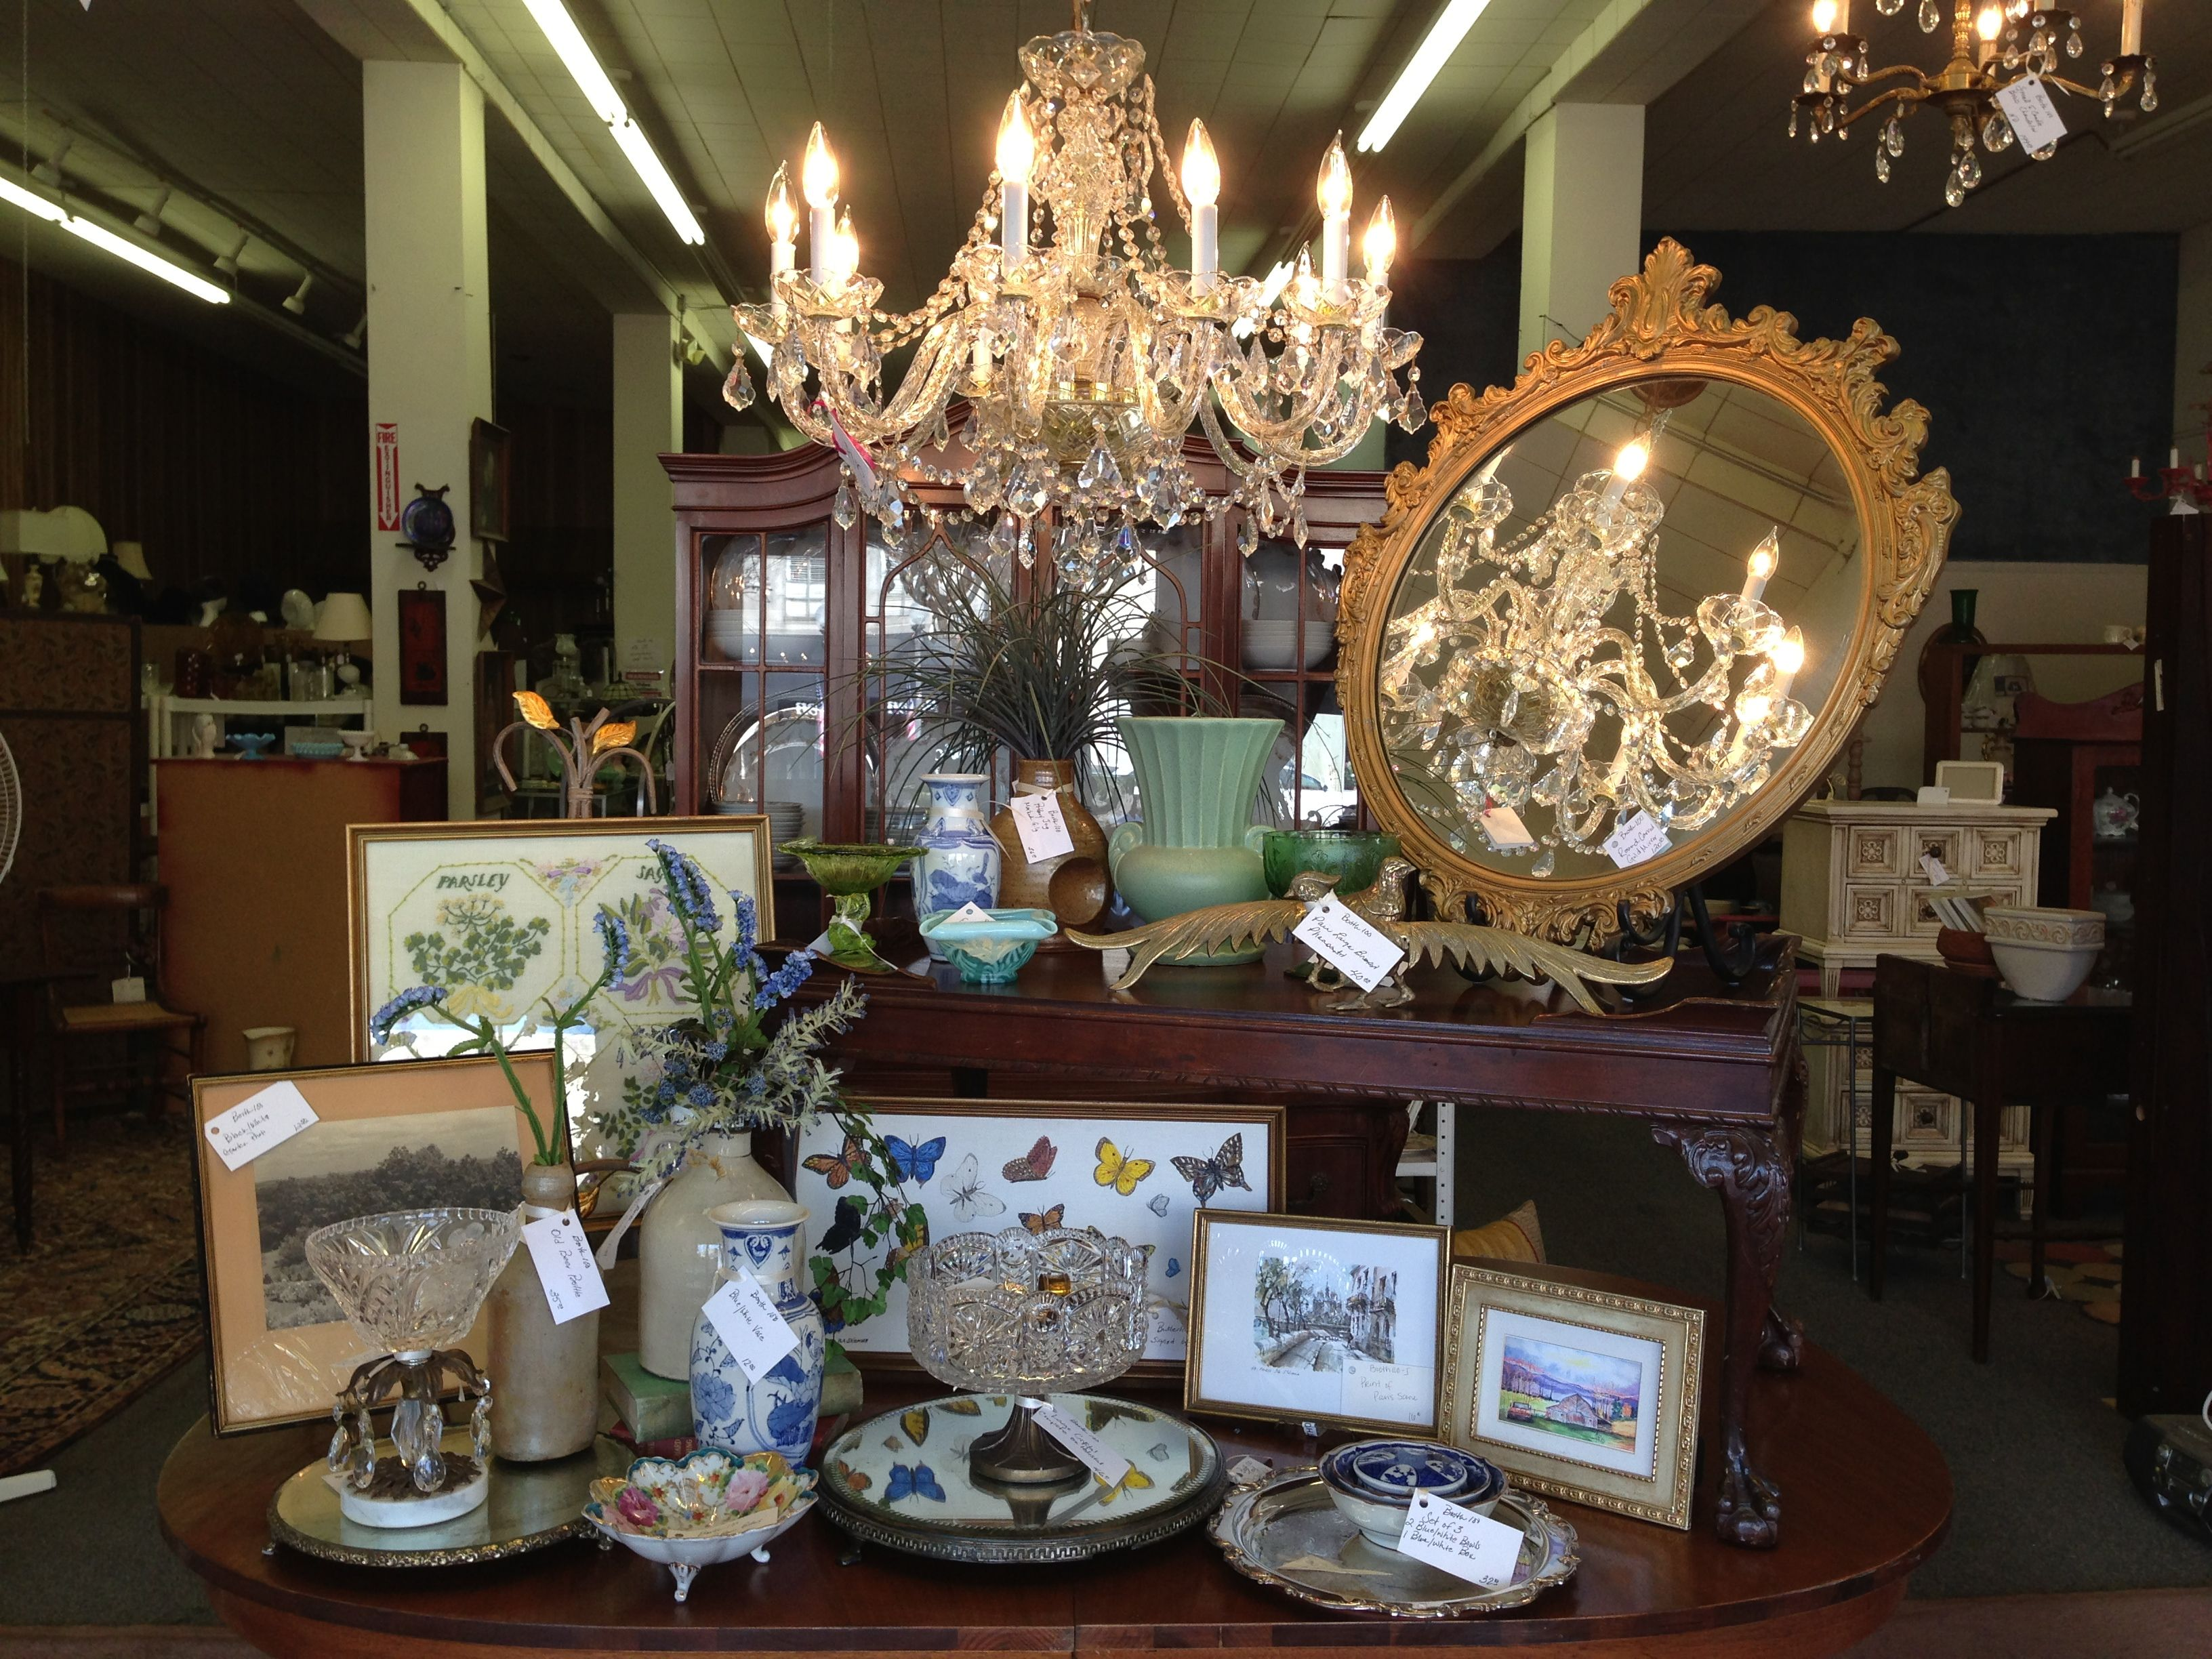 antique stores florence al Inheritance Antiques is Booth 100 in Gingerbread Antique Mall  antique stores florence al